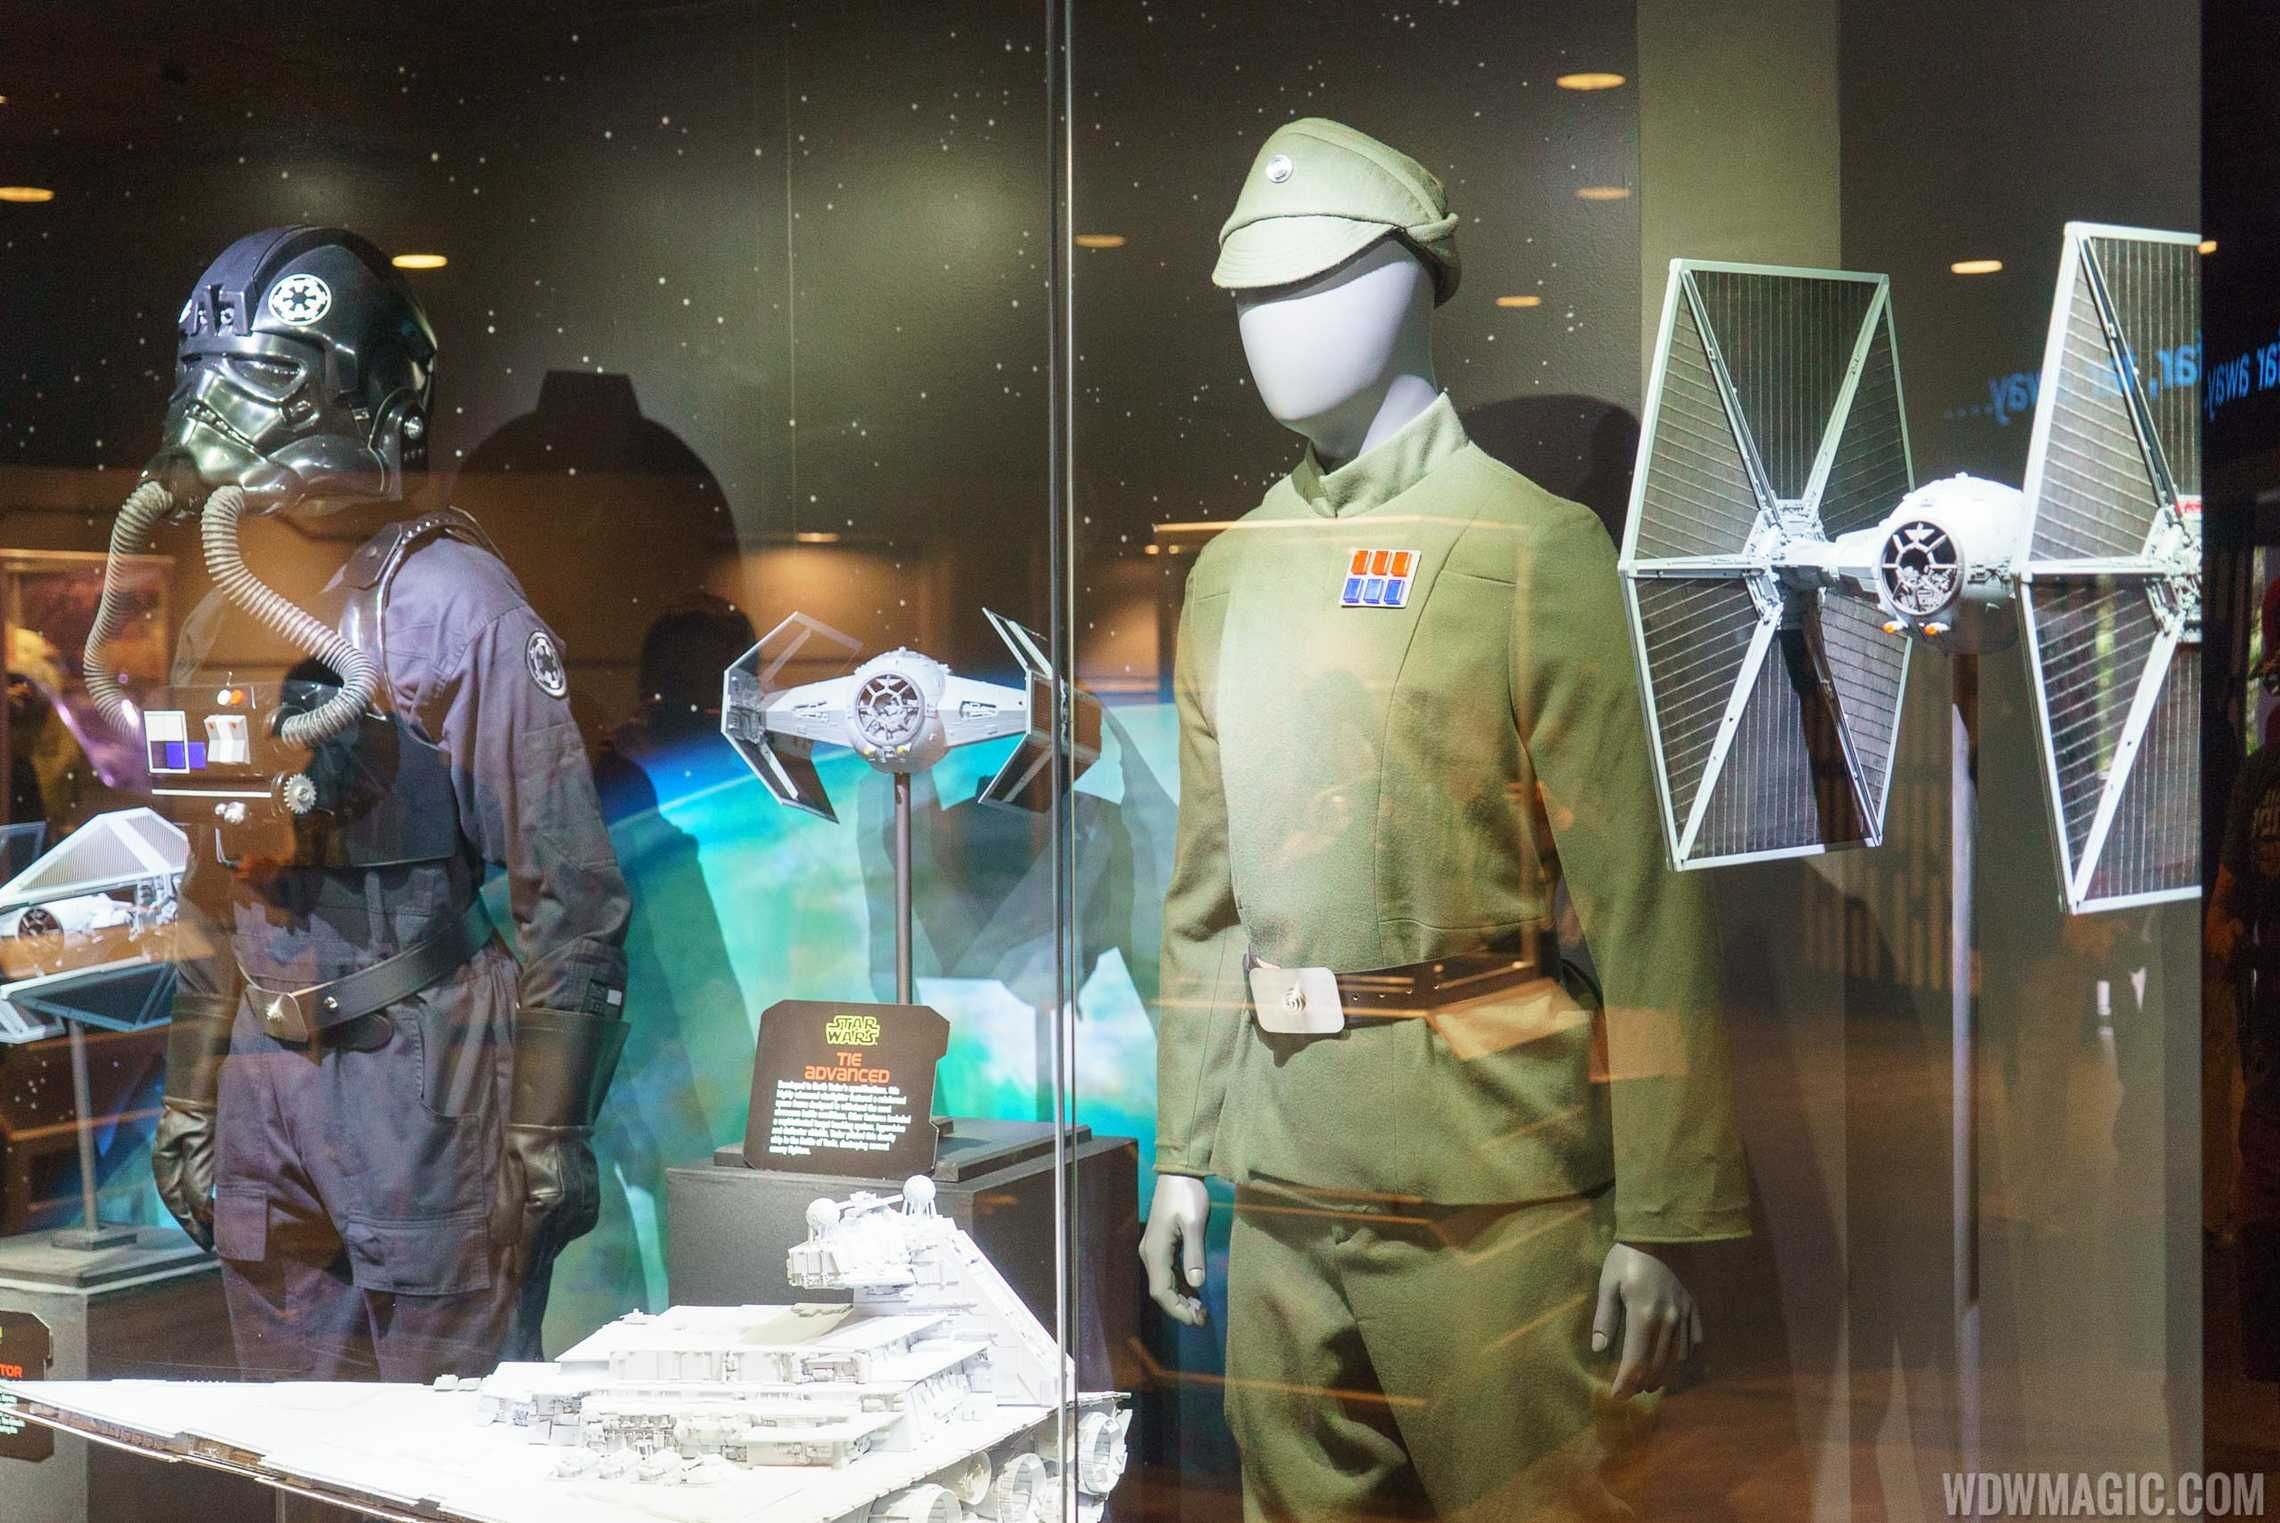 Star Wars Launch Bay - Celebration Gallery costumes